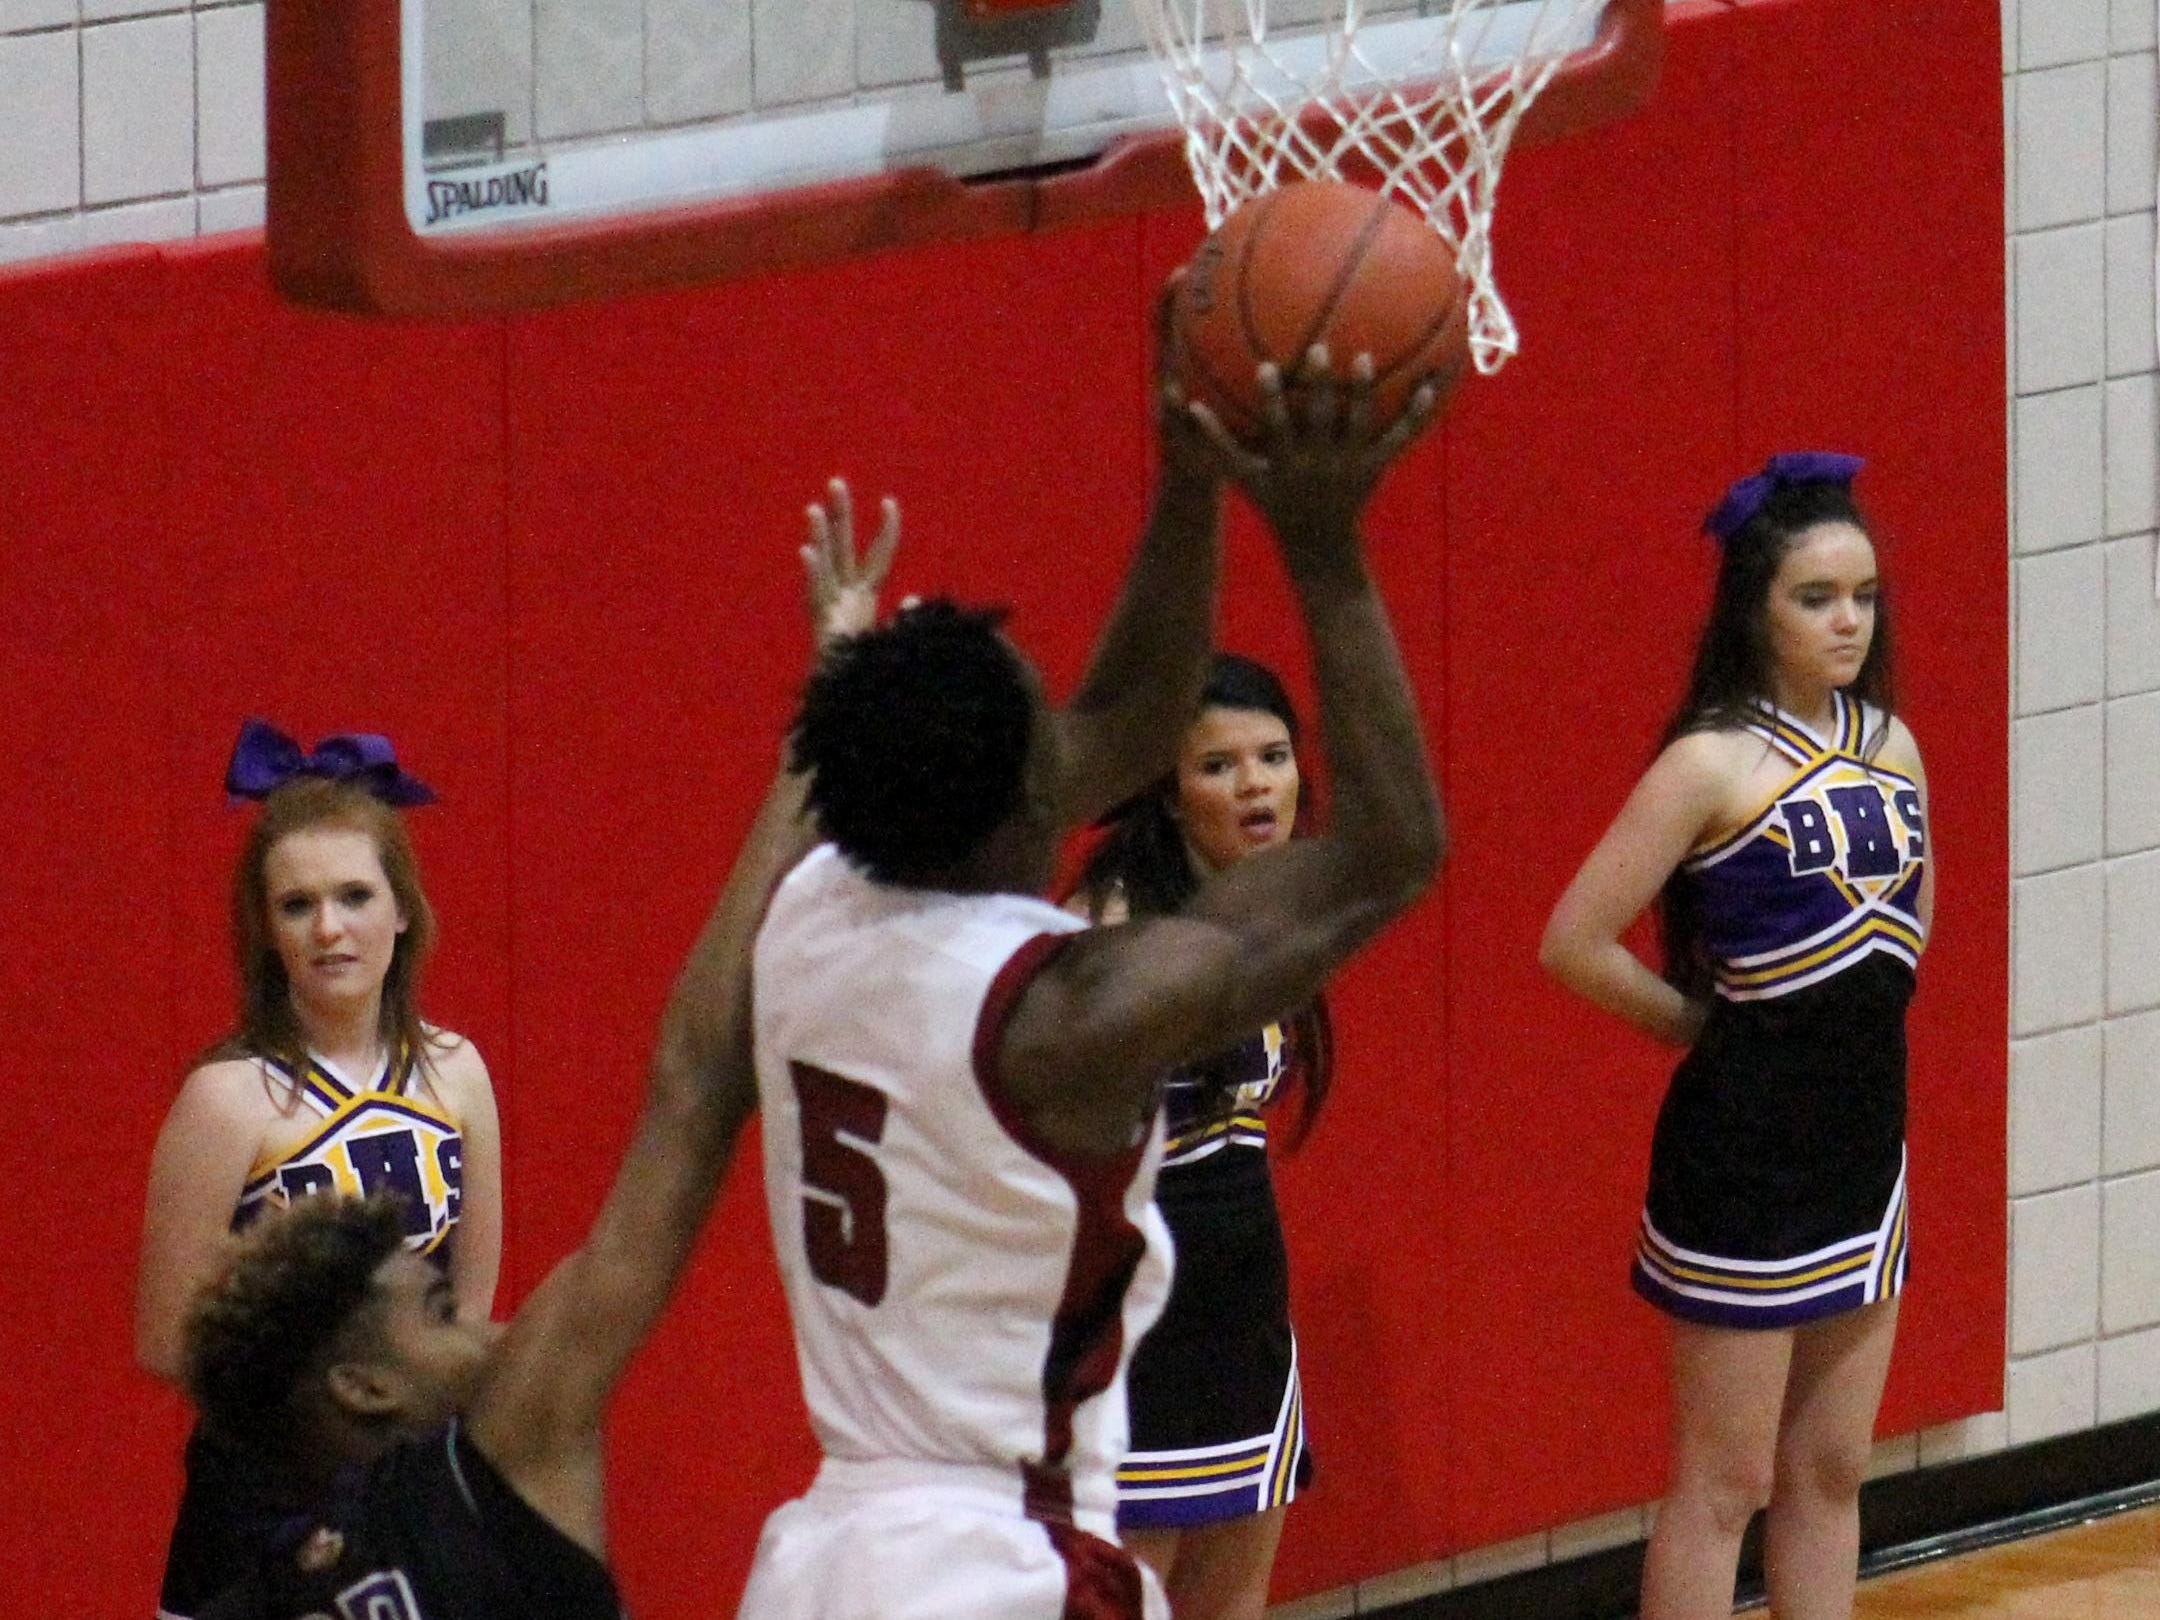 L'Jarius Sneed (5) for Minden goes up for a shot under the basket against Benton's defense during Friday night's boys basketball game at Minden High School.